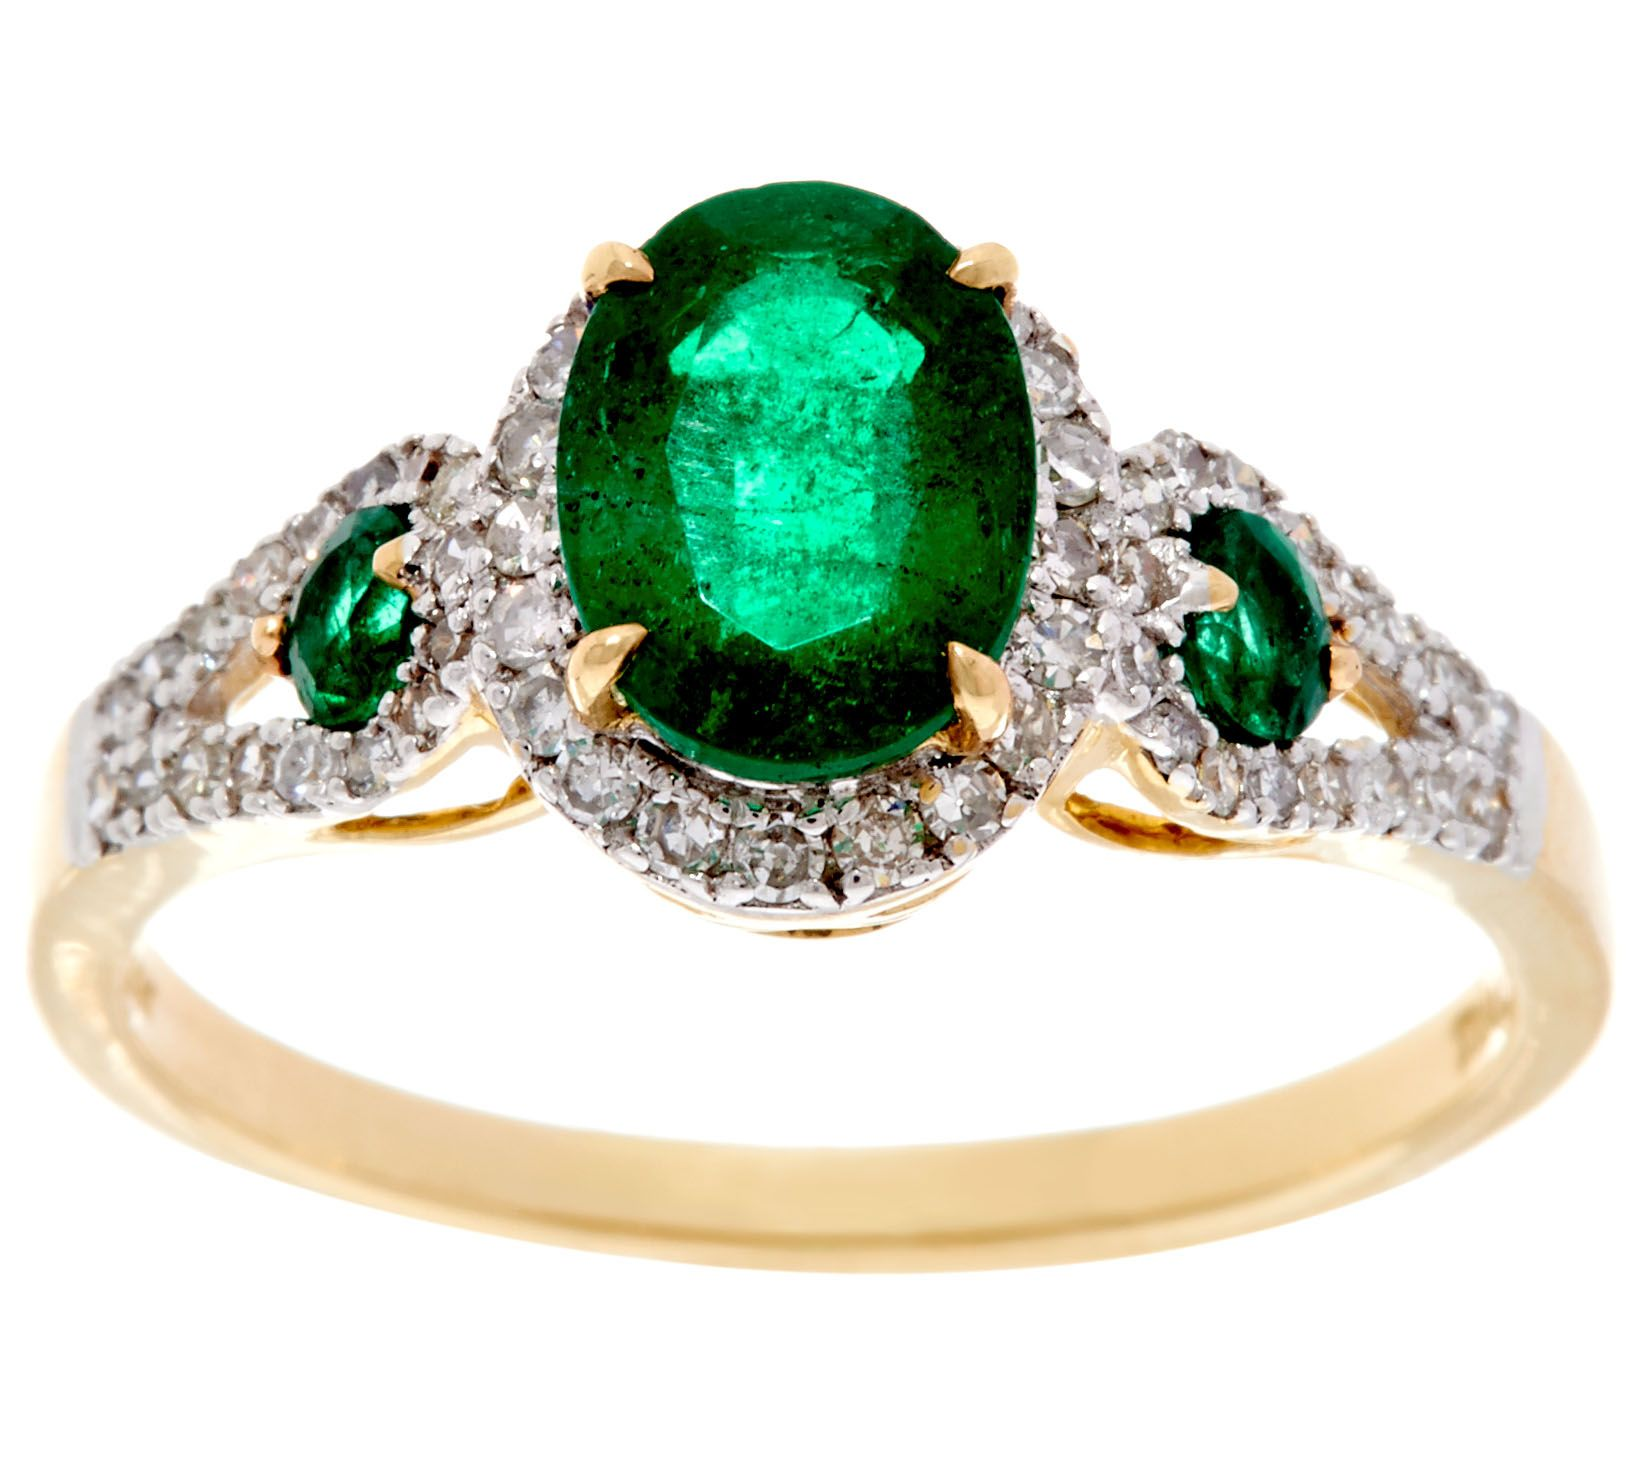 emerald youtube stone precious online watch